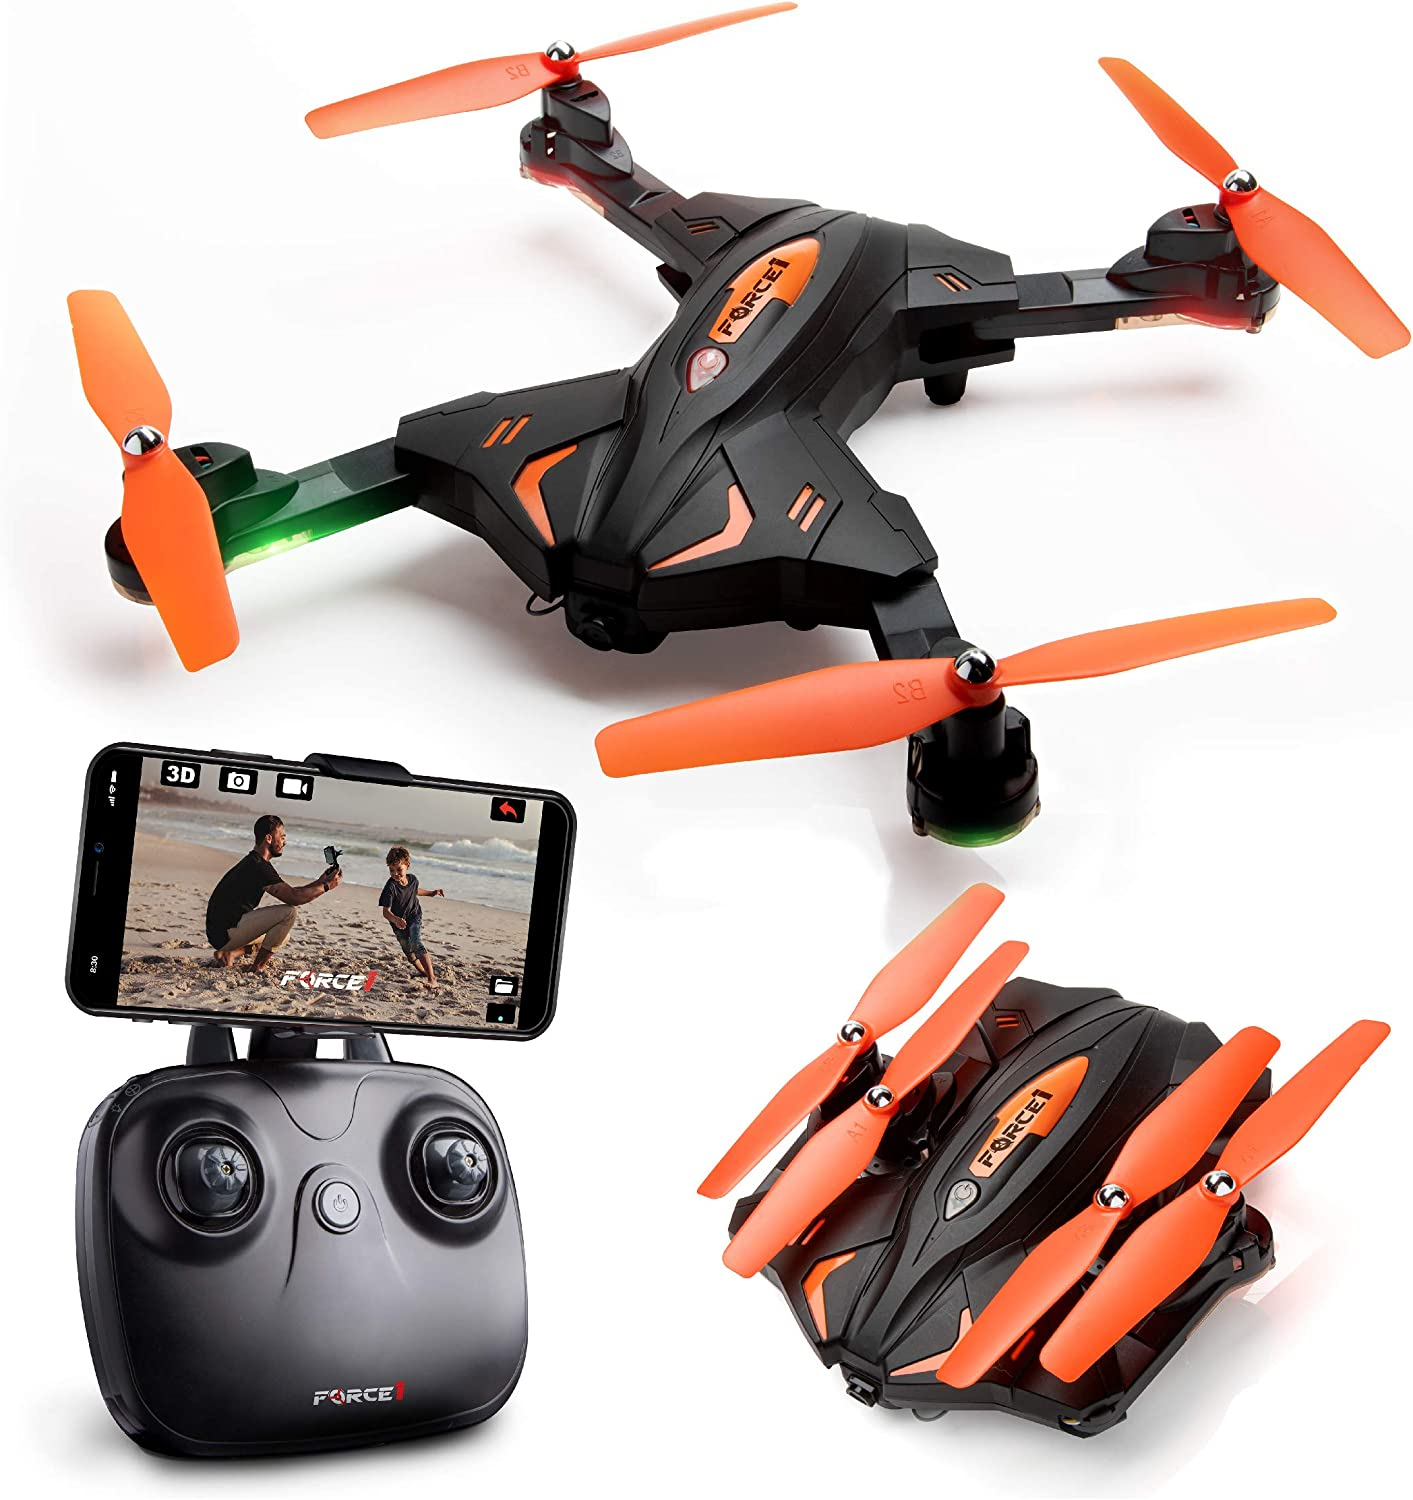 Foldable Drones with Camera for Adults or Kids – F111WF WiFi FPV Remote Control Quadcopter Drone for Beginners, Folding RC Drone Helicopter Toy Gifts